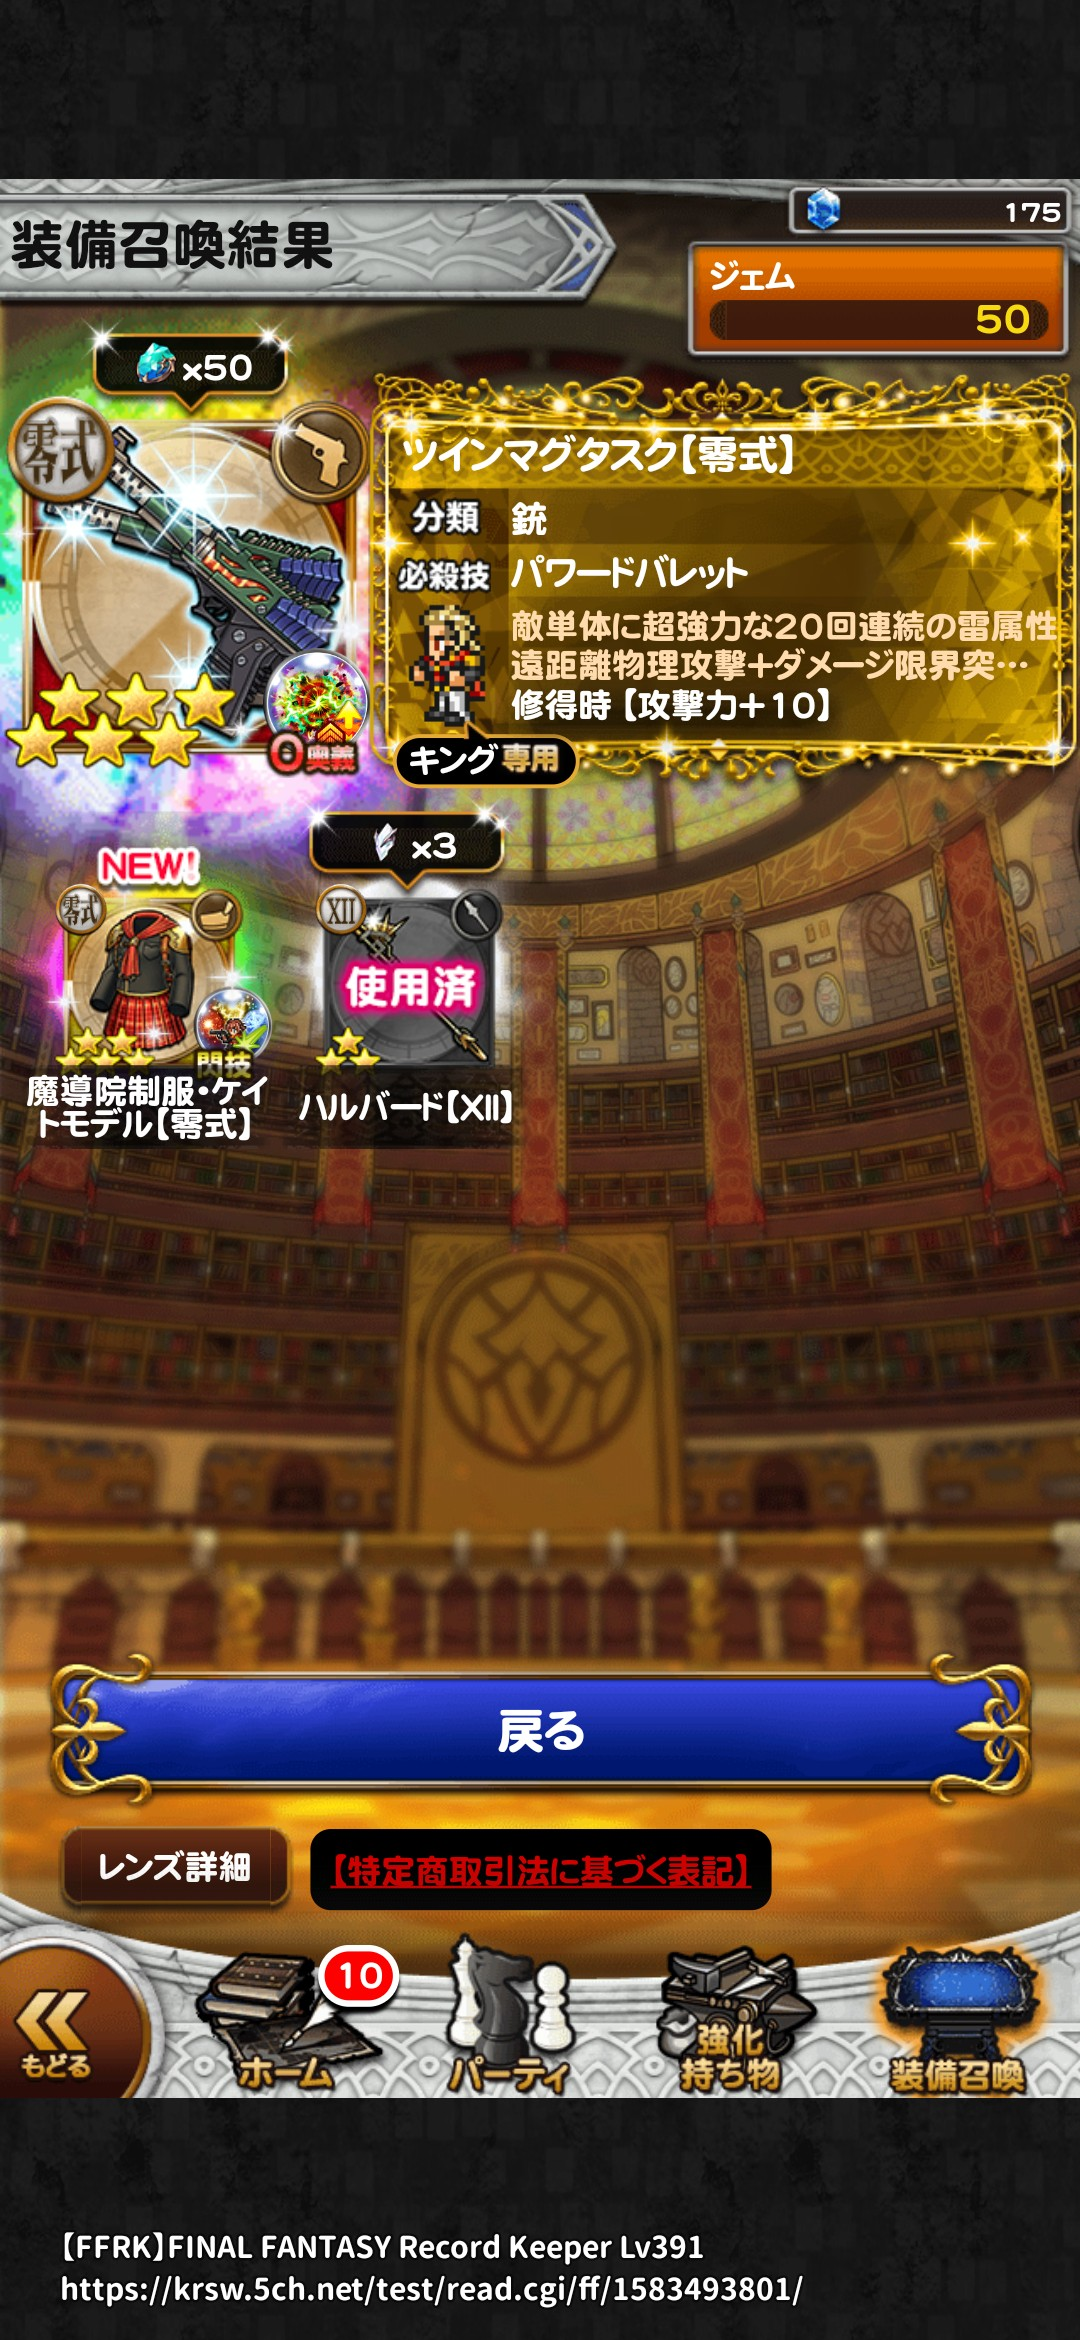 【FFRK】FINAL FANTASY Record Keeper Lv391 ->画像>139枚